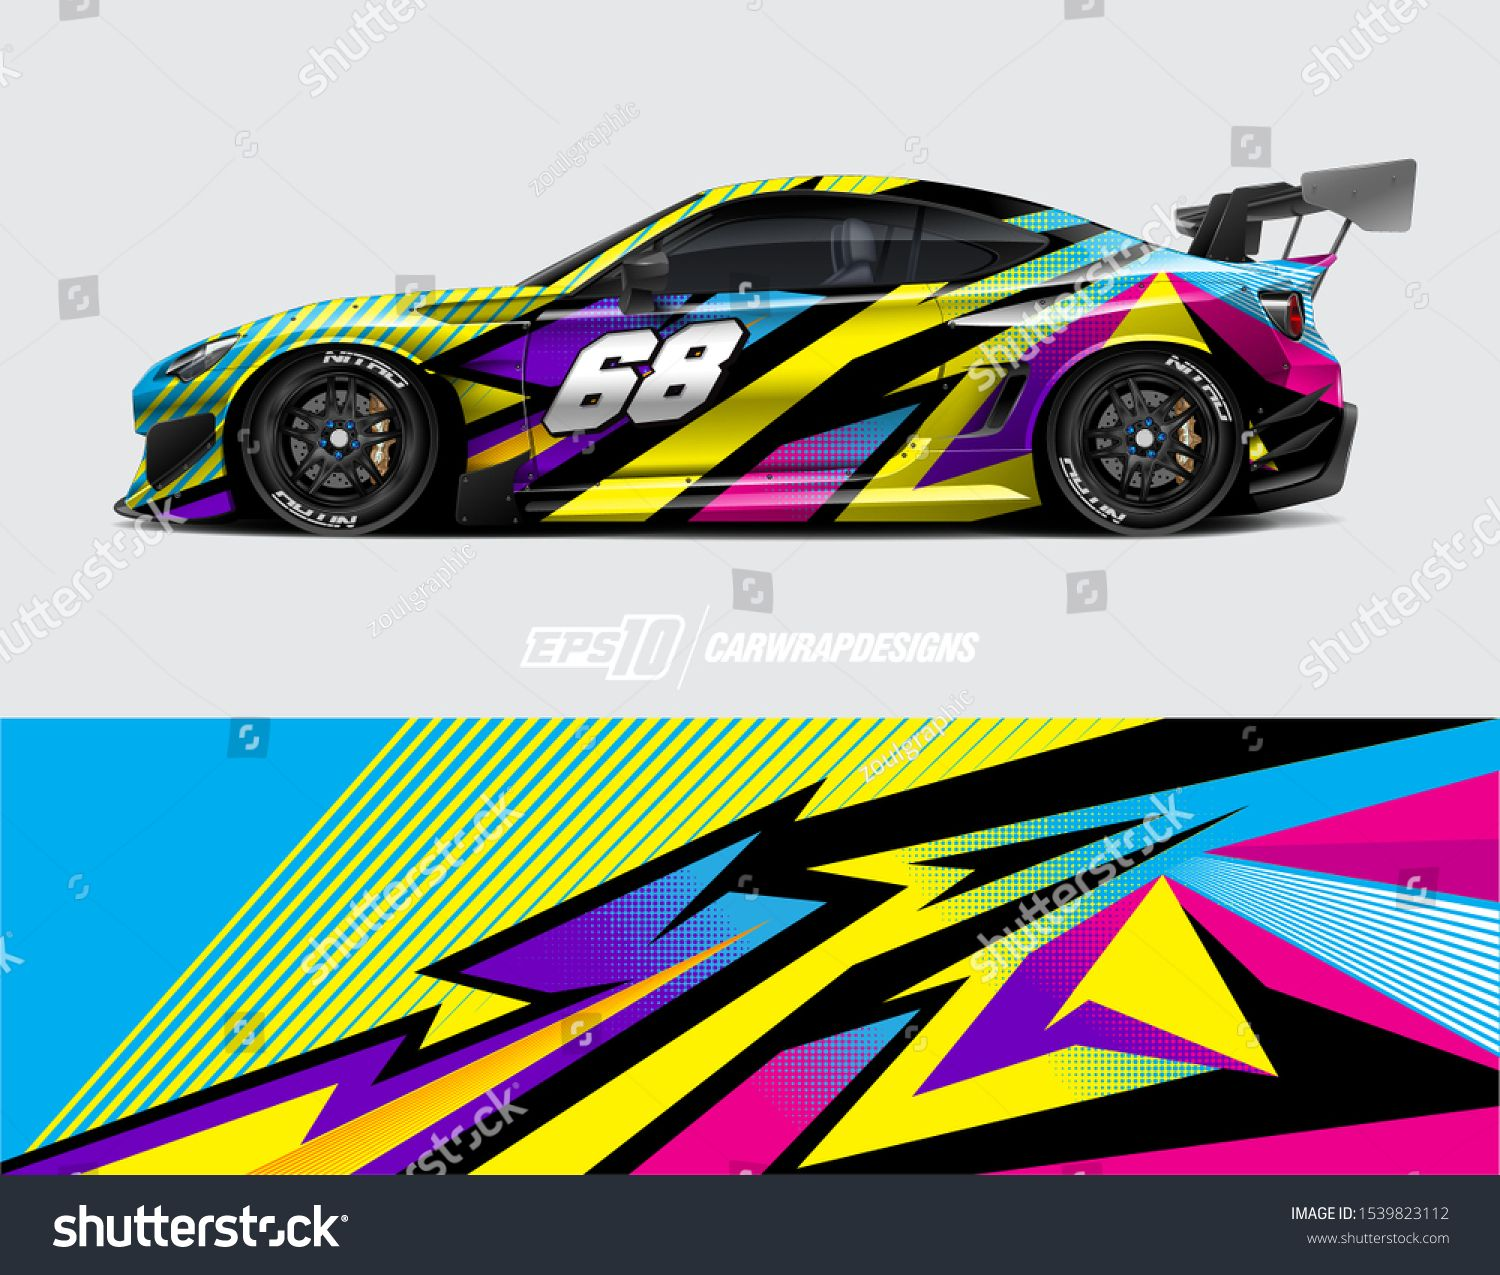 Car Wrap Decal Designs Abstract Racing And Sport Background For Racing Livery Or Daily Use Car Vinyl Sticker Vector E Car Wrap Decal Design Racing Car Design